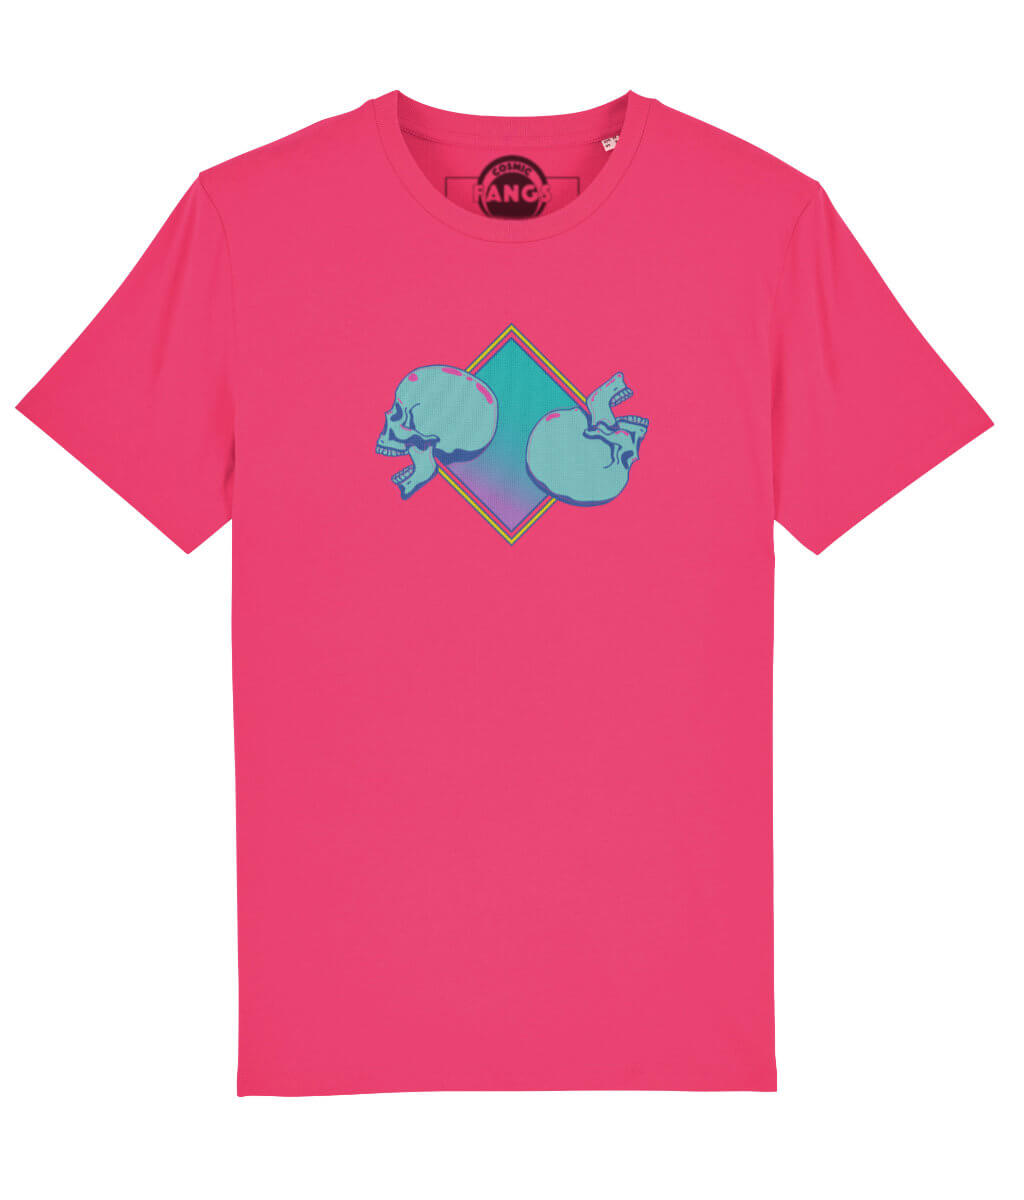 pink cotton mens t-shirt with skulls logo in blue and turoquise